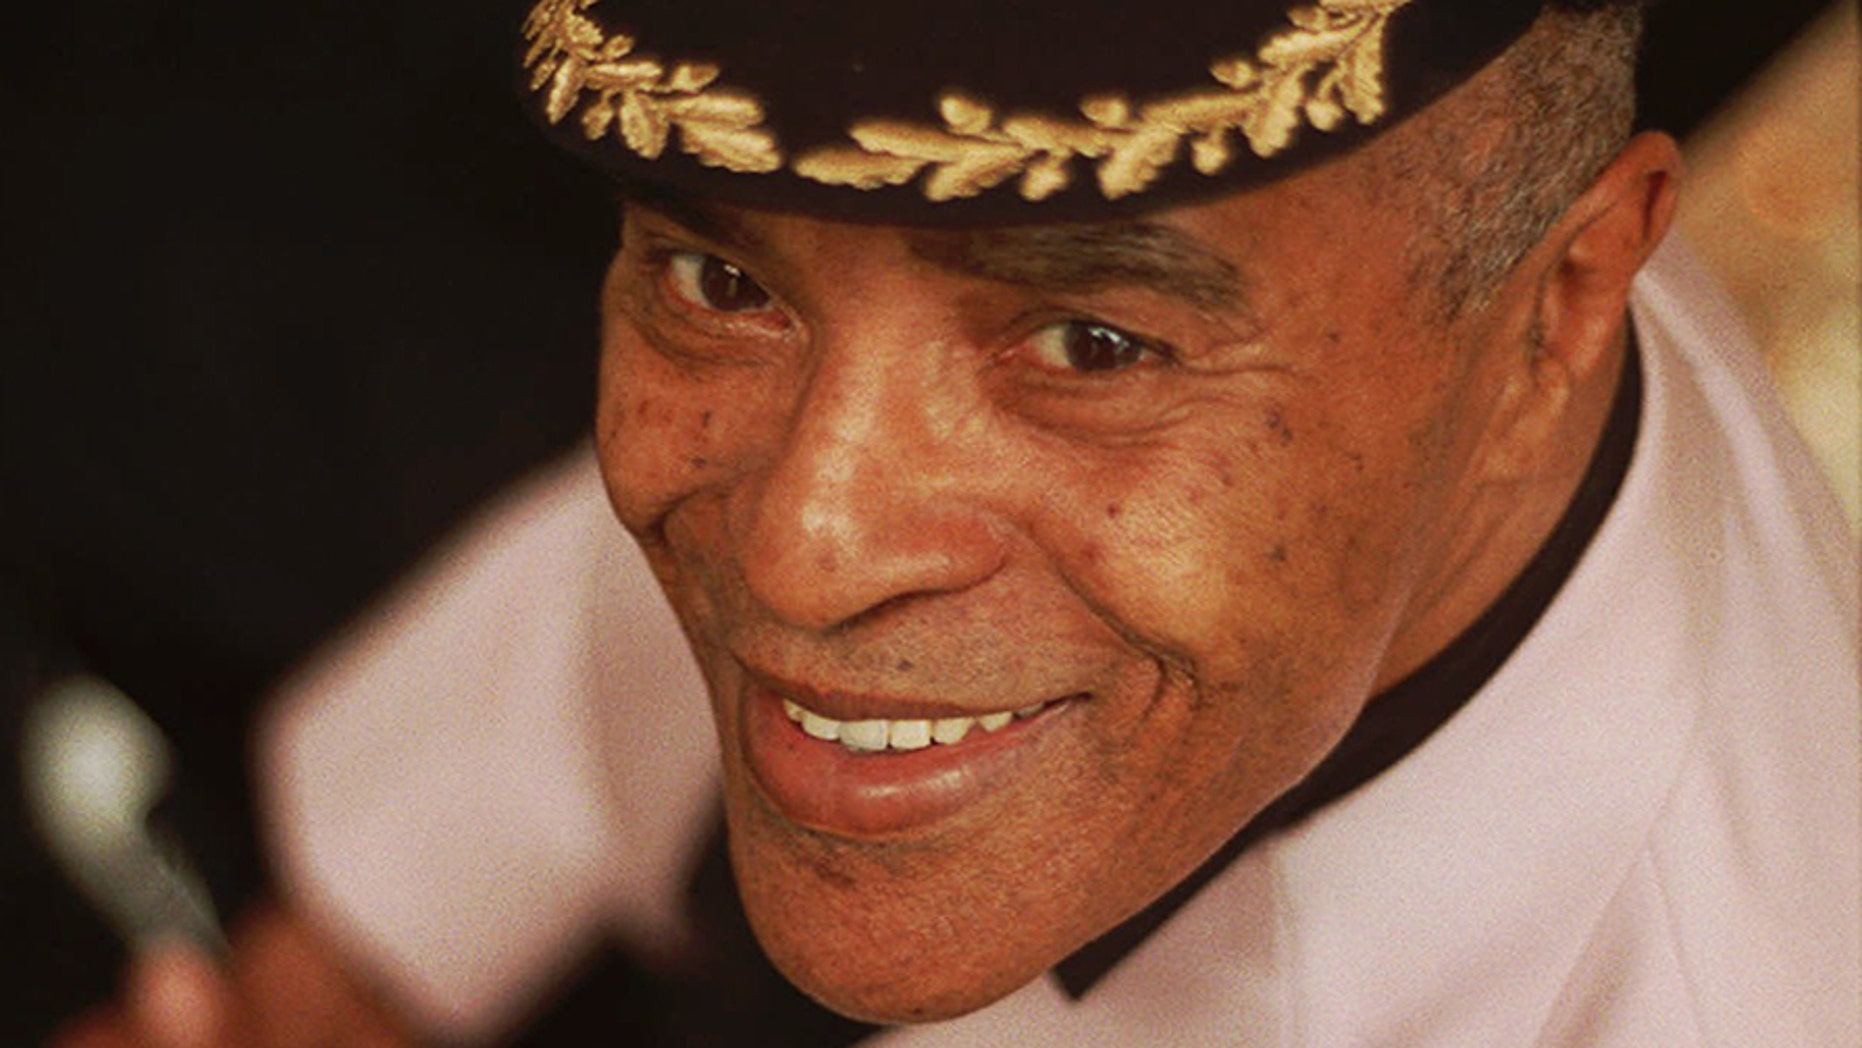 In the file photo above, jazz singer Jon Hendricks sports a favorite cap at his New York home in late May 1997. Hendricks passed away Wednesday at a hospital in Manhattan, N.Y., according to a report from The New York Times.